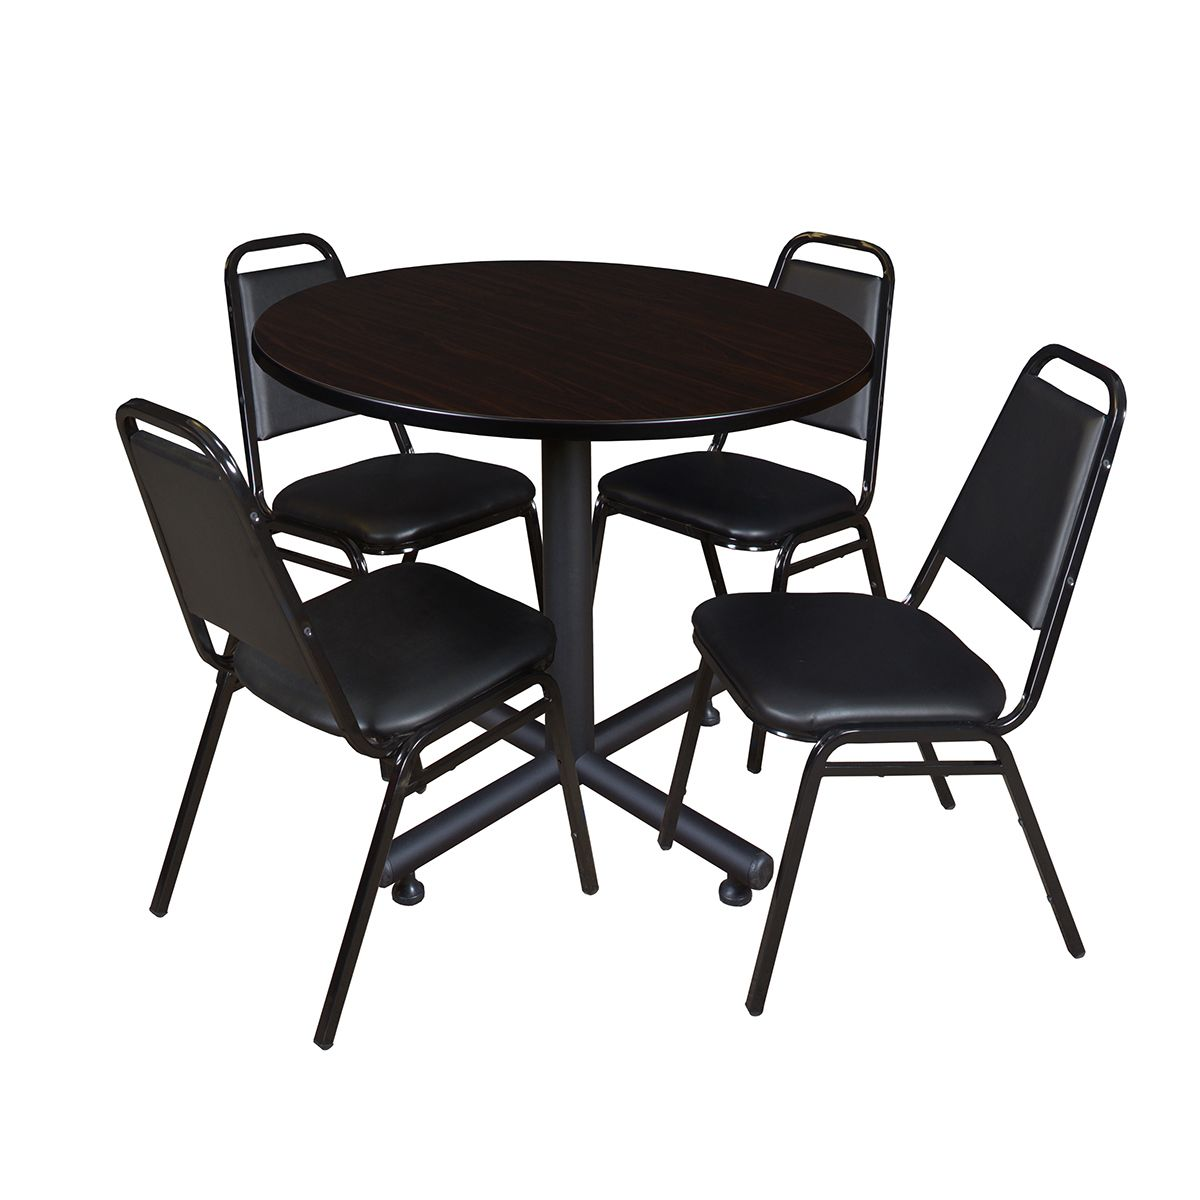 Regency Seating Kobe Wood/Metal/ 42-inch Round Table With 4 Black Stackable Restaurant Chairs